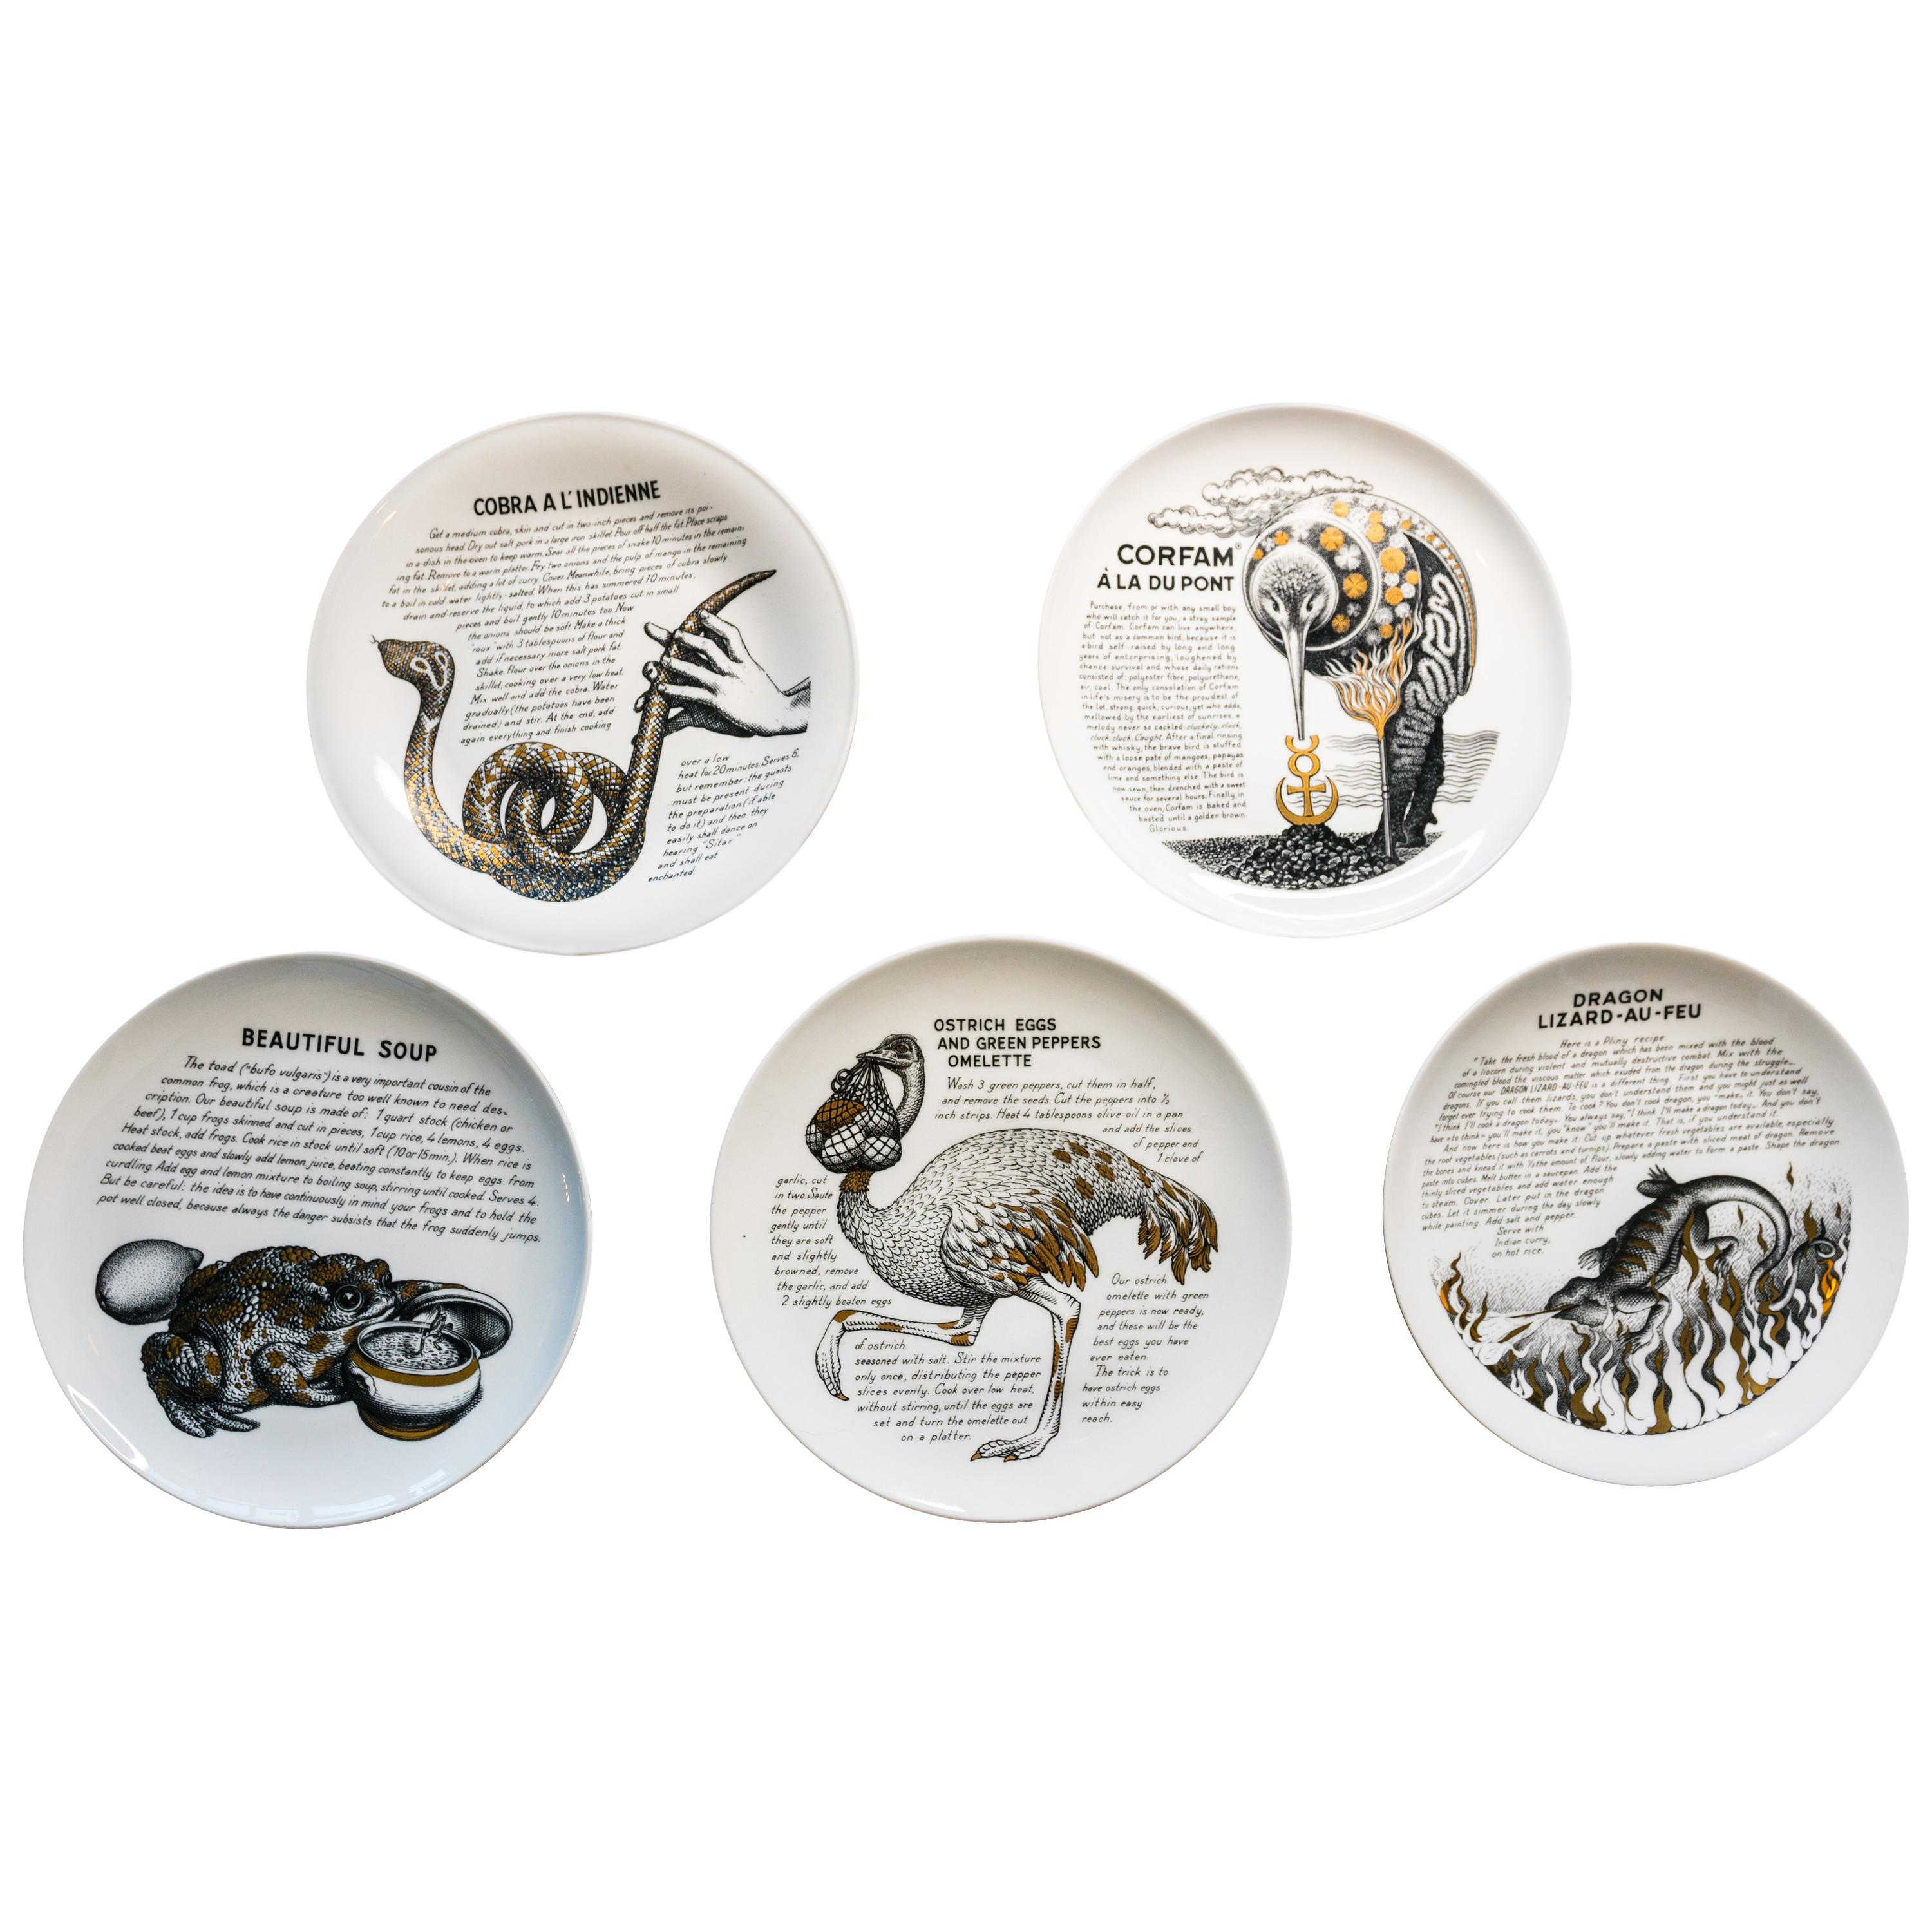 Five Piero Fornasetti Fleming Joffe Porcelain Recipe Plate-Vero-Pig Piccadilly  sc 1 st  1stDibs & Antique and Vintage Dinner Plates - 1051 For Sale at 1stdibs